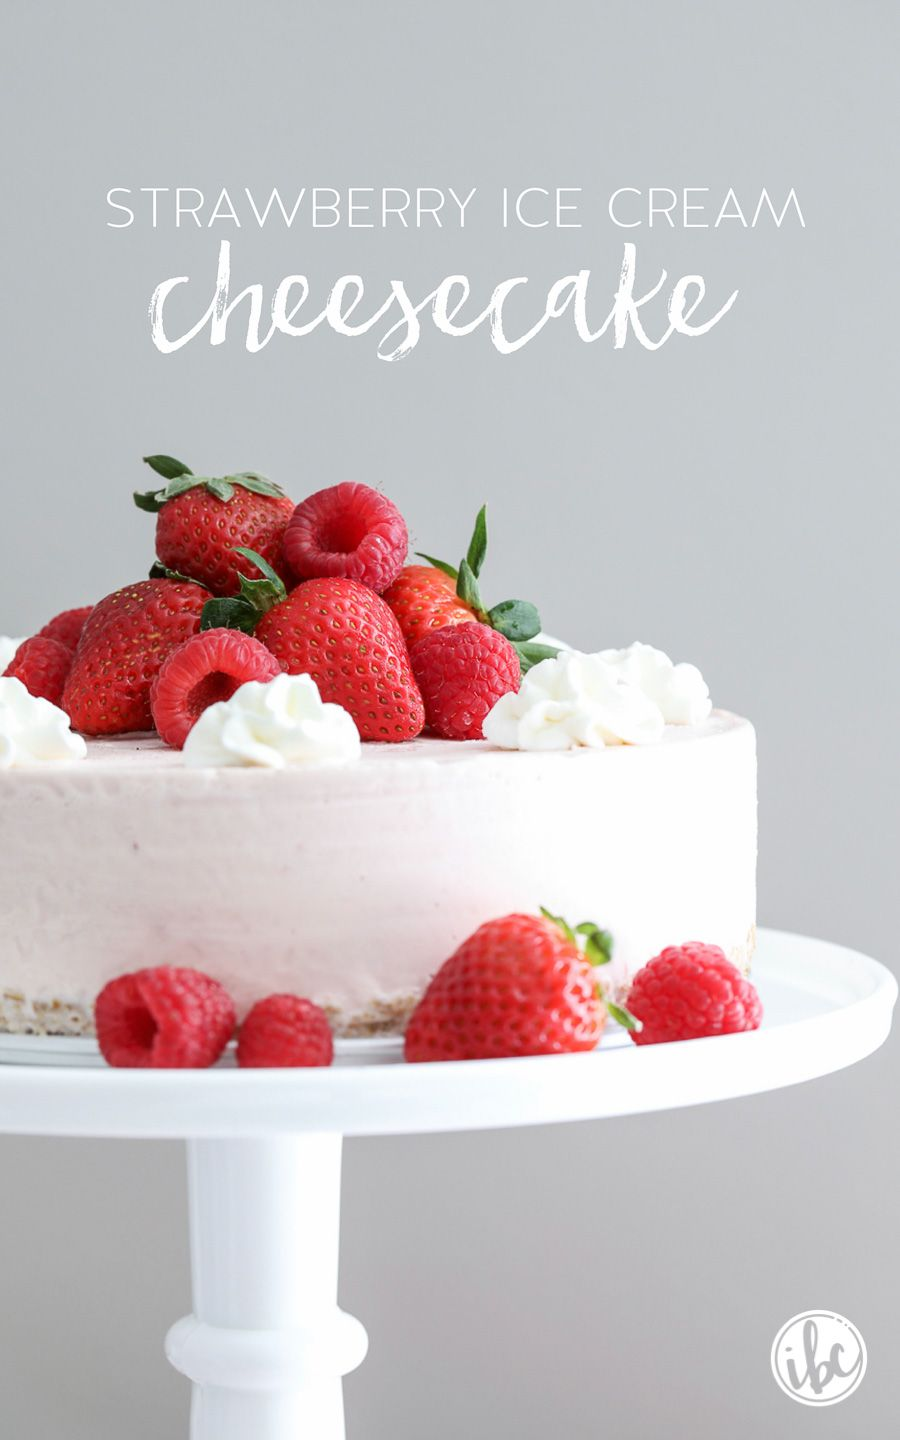 Strawberry Ice Cream Cheesecake #cheesecakeicecream